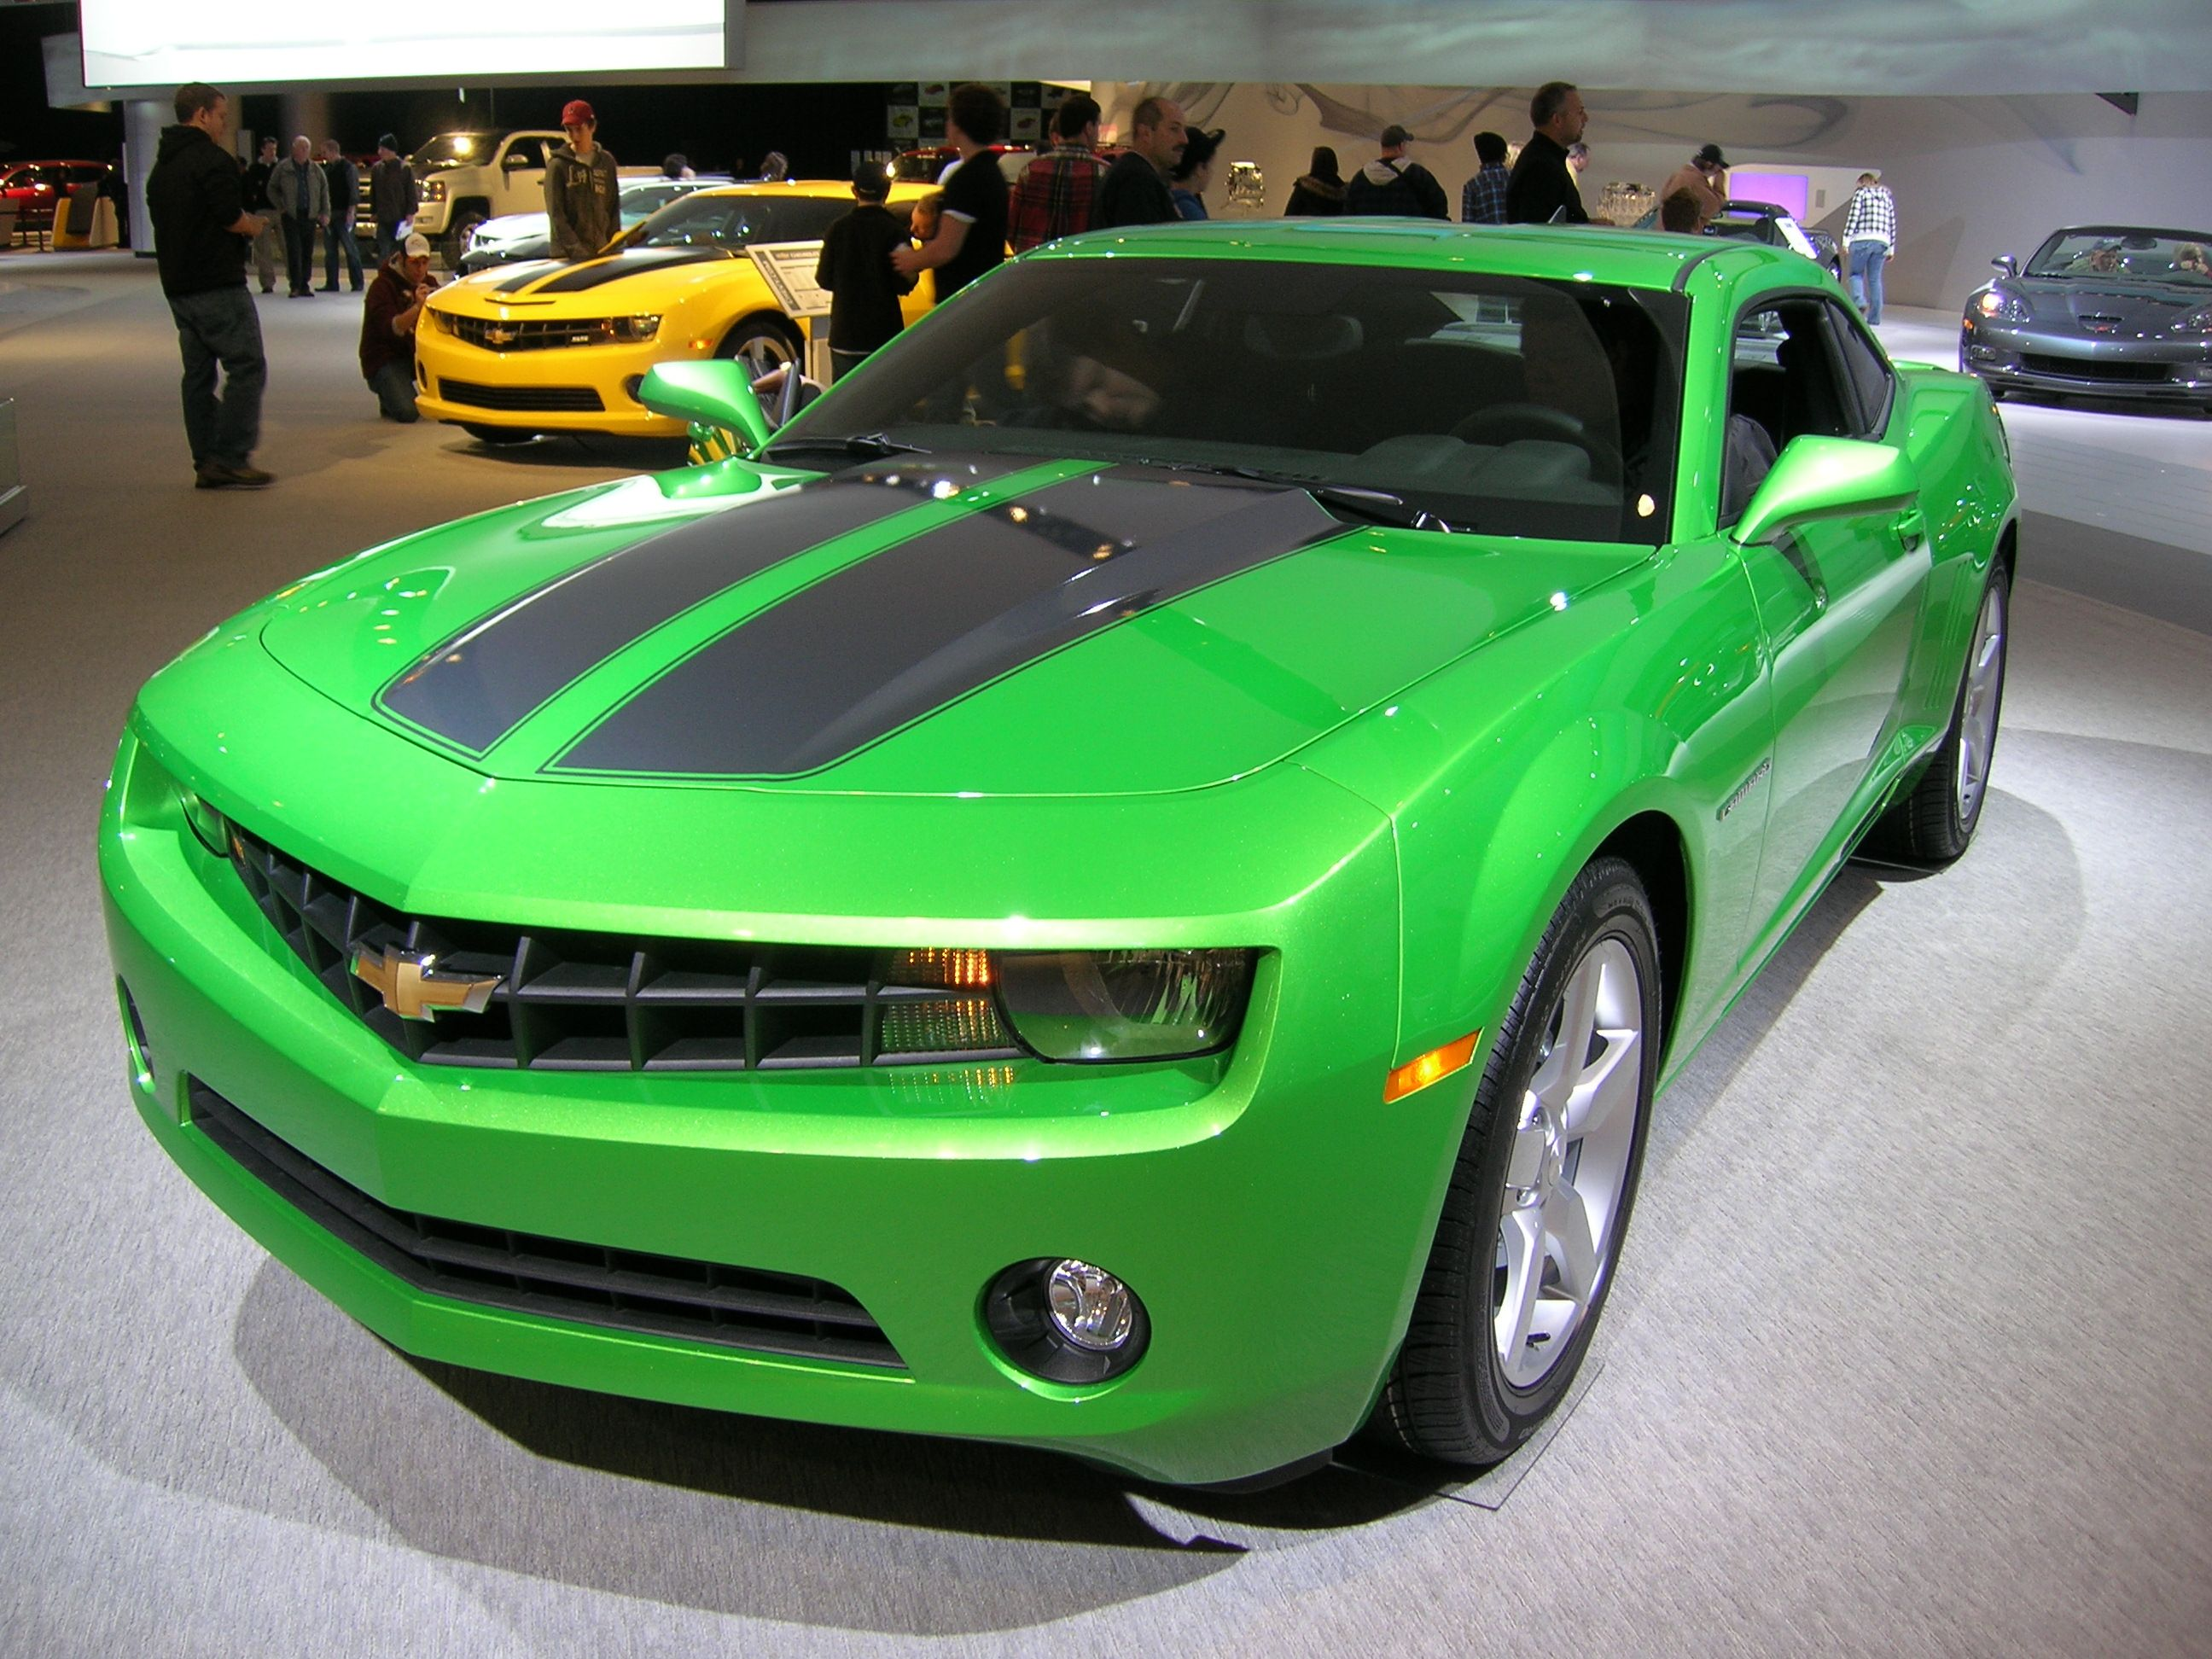 2011 synergy green camaro vroom vroom Pinterest